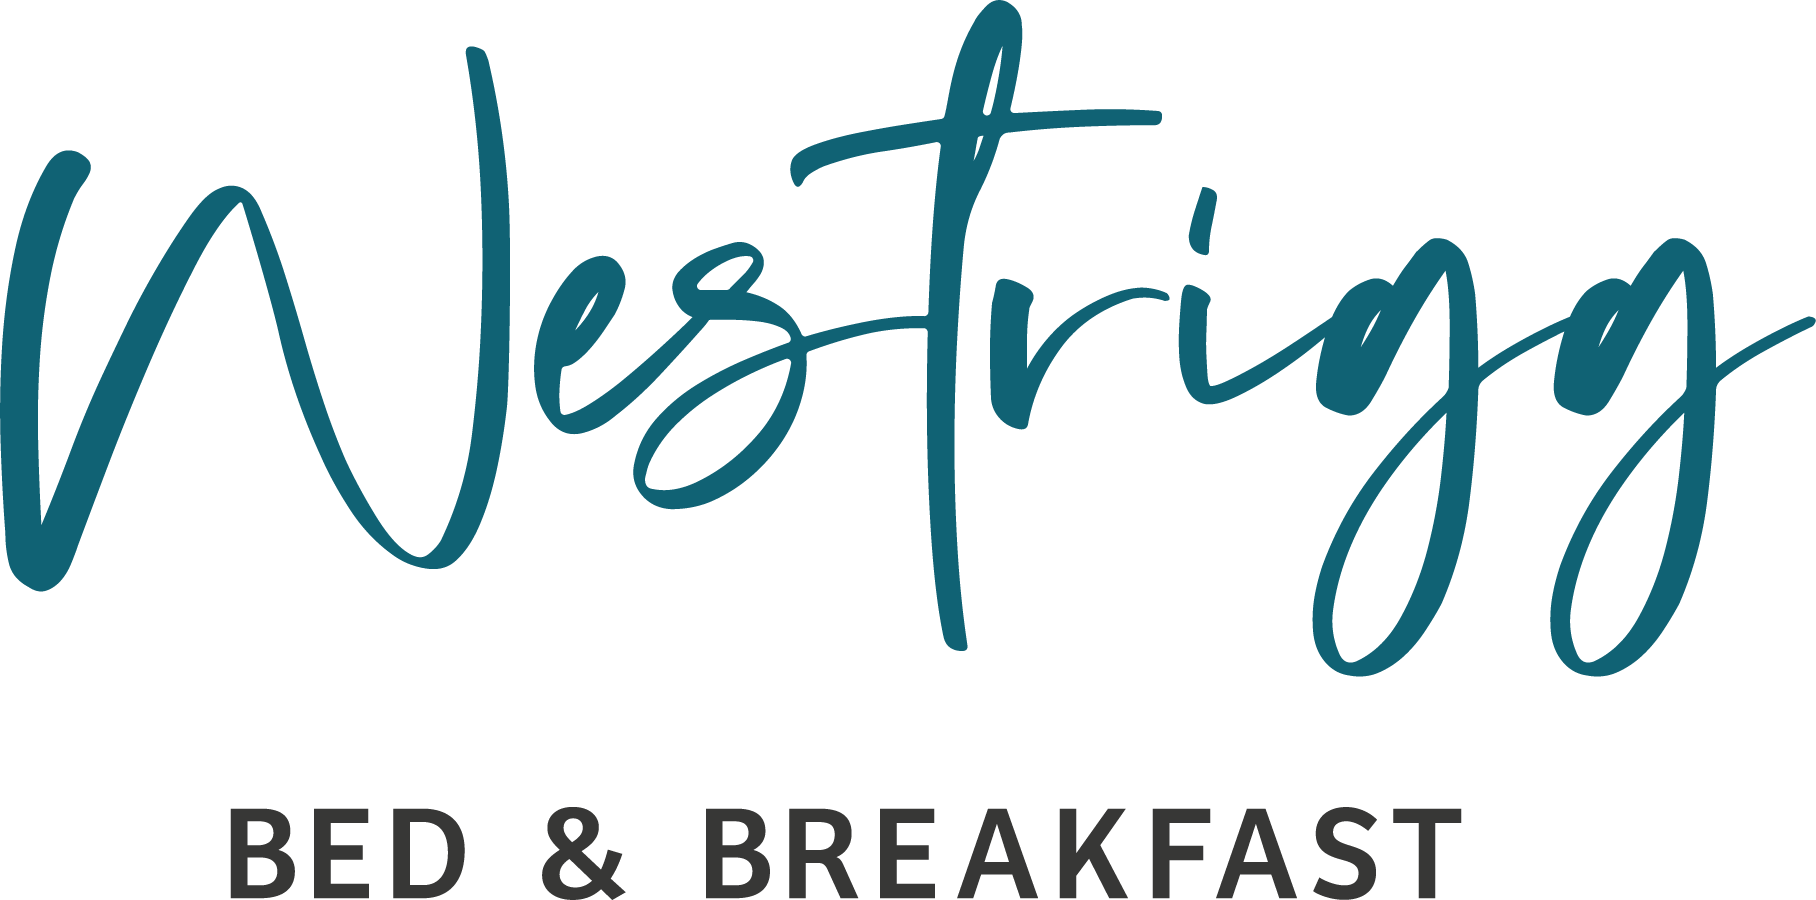 Westrigg Bed & Breakfast